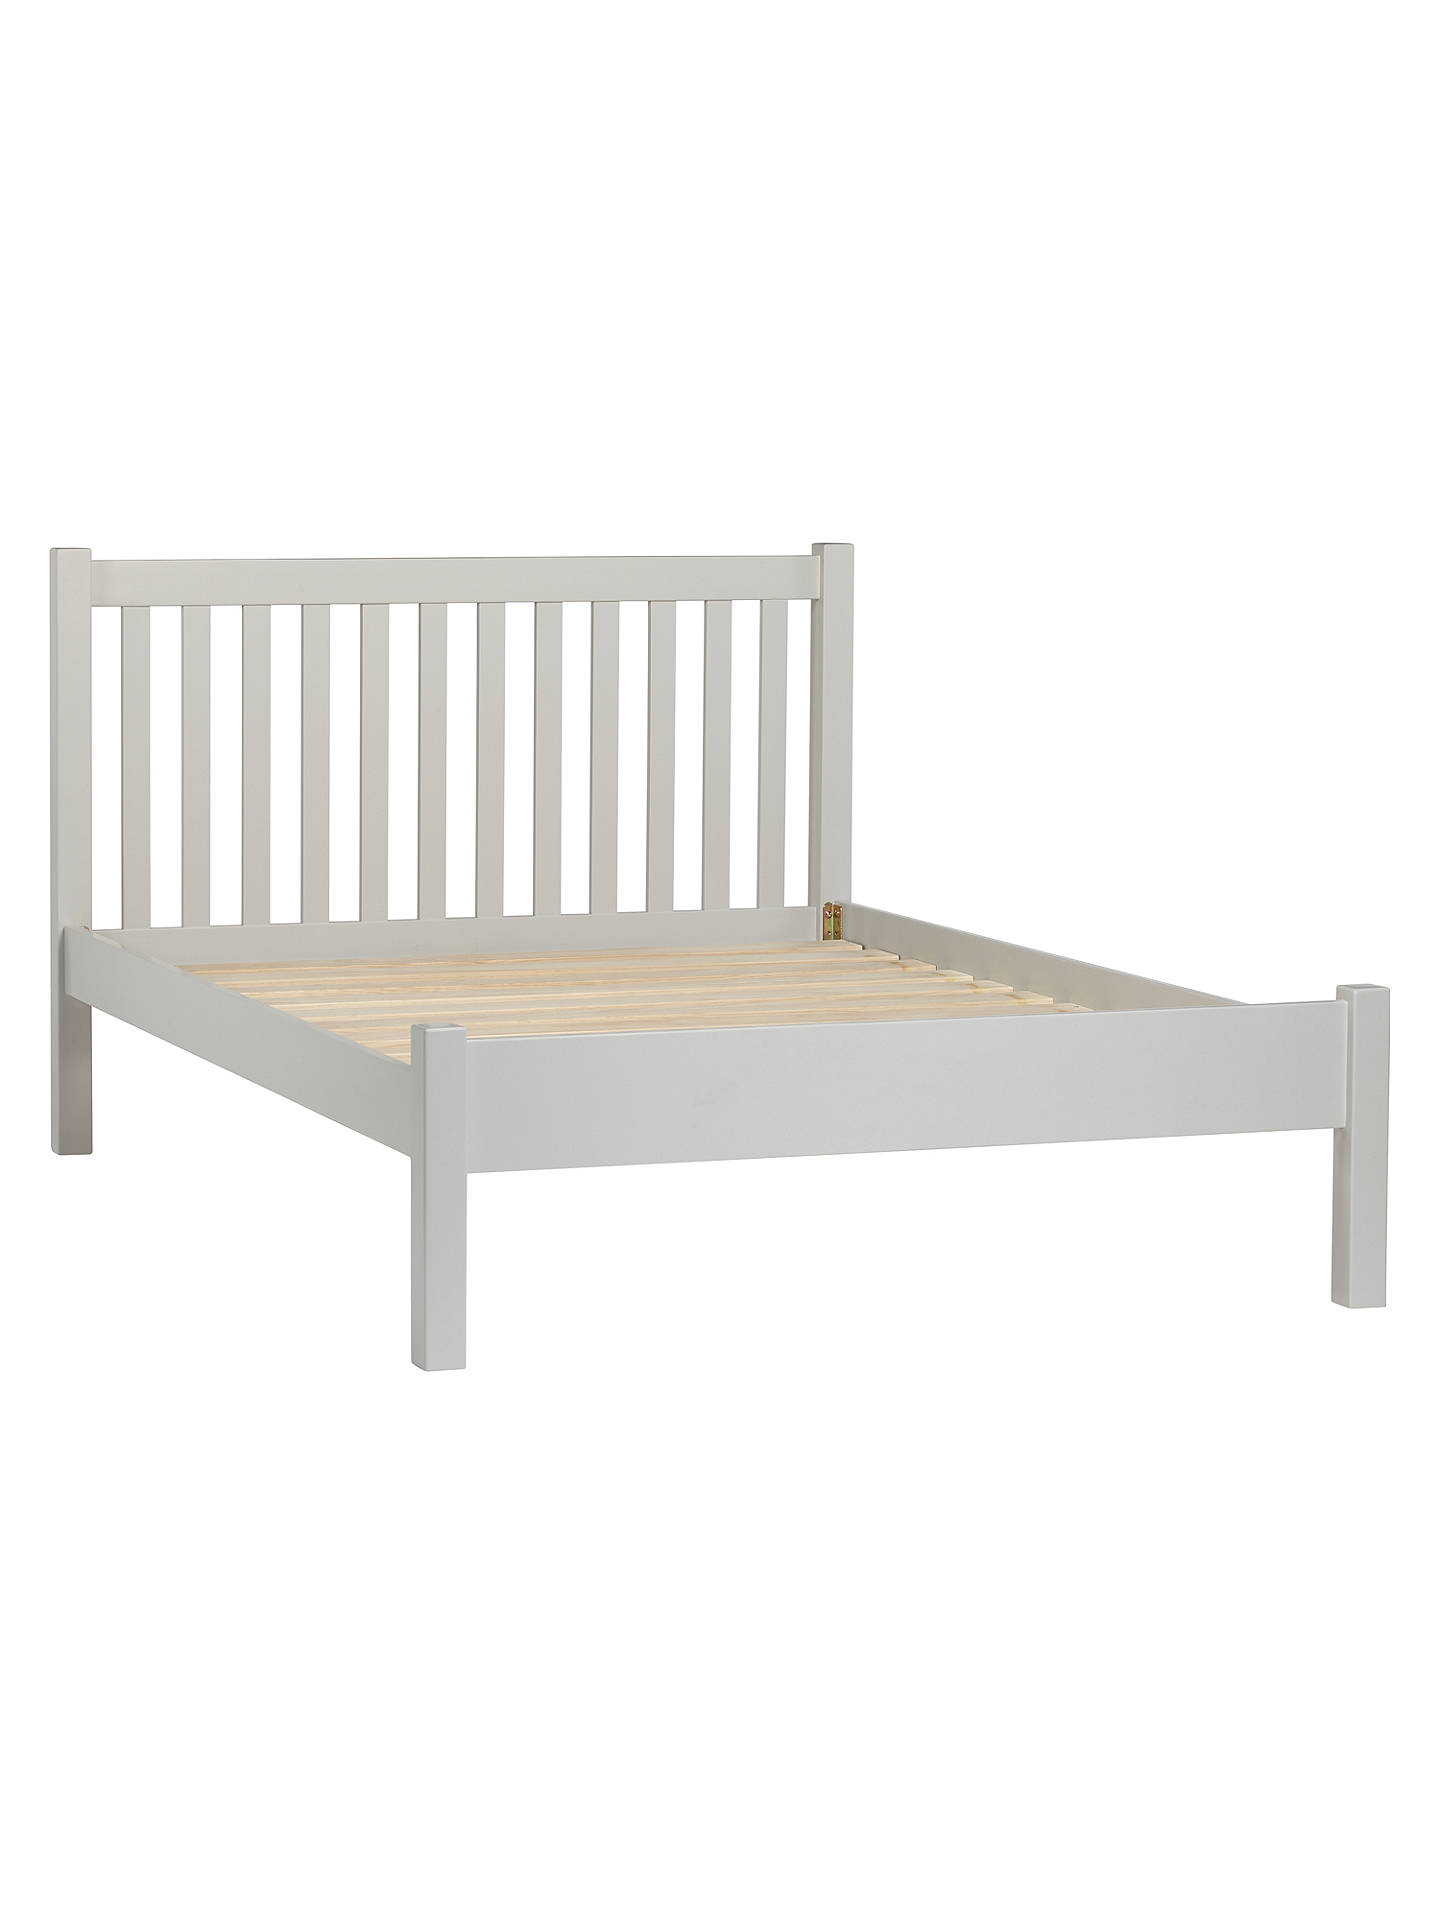 Incredible John Lewis Partners Wilton Bed Frame Double Grey Onthecornerstone Fun Painted Chair Ideas Images Onthecornerstoneorg